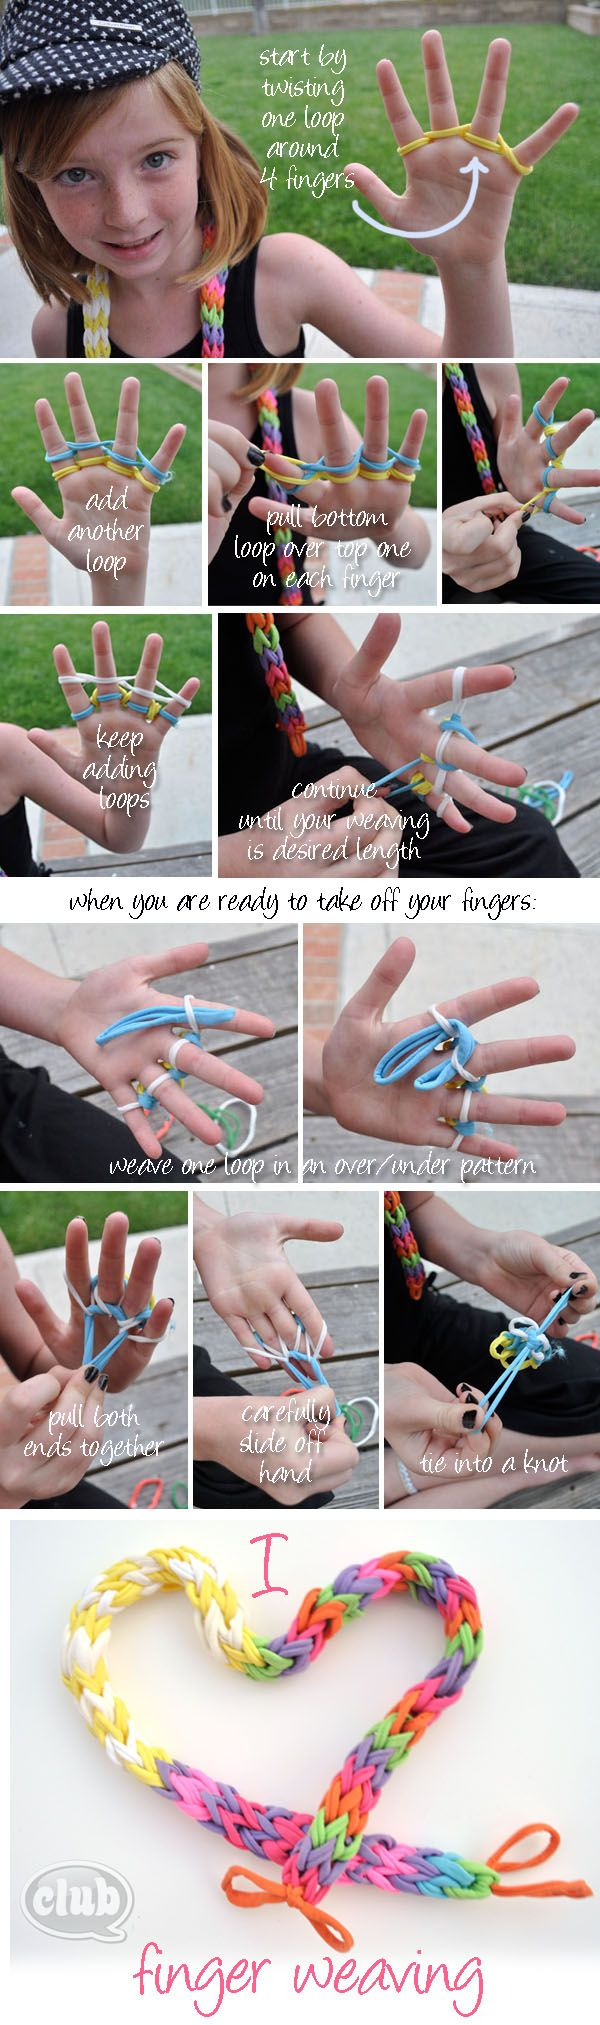 finger weaving tutorial@clubchicacircle. perfect boredom buster craft using cotton loops and just your hands. easy DIY